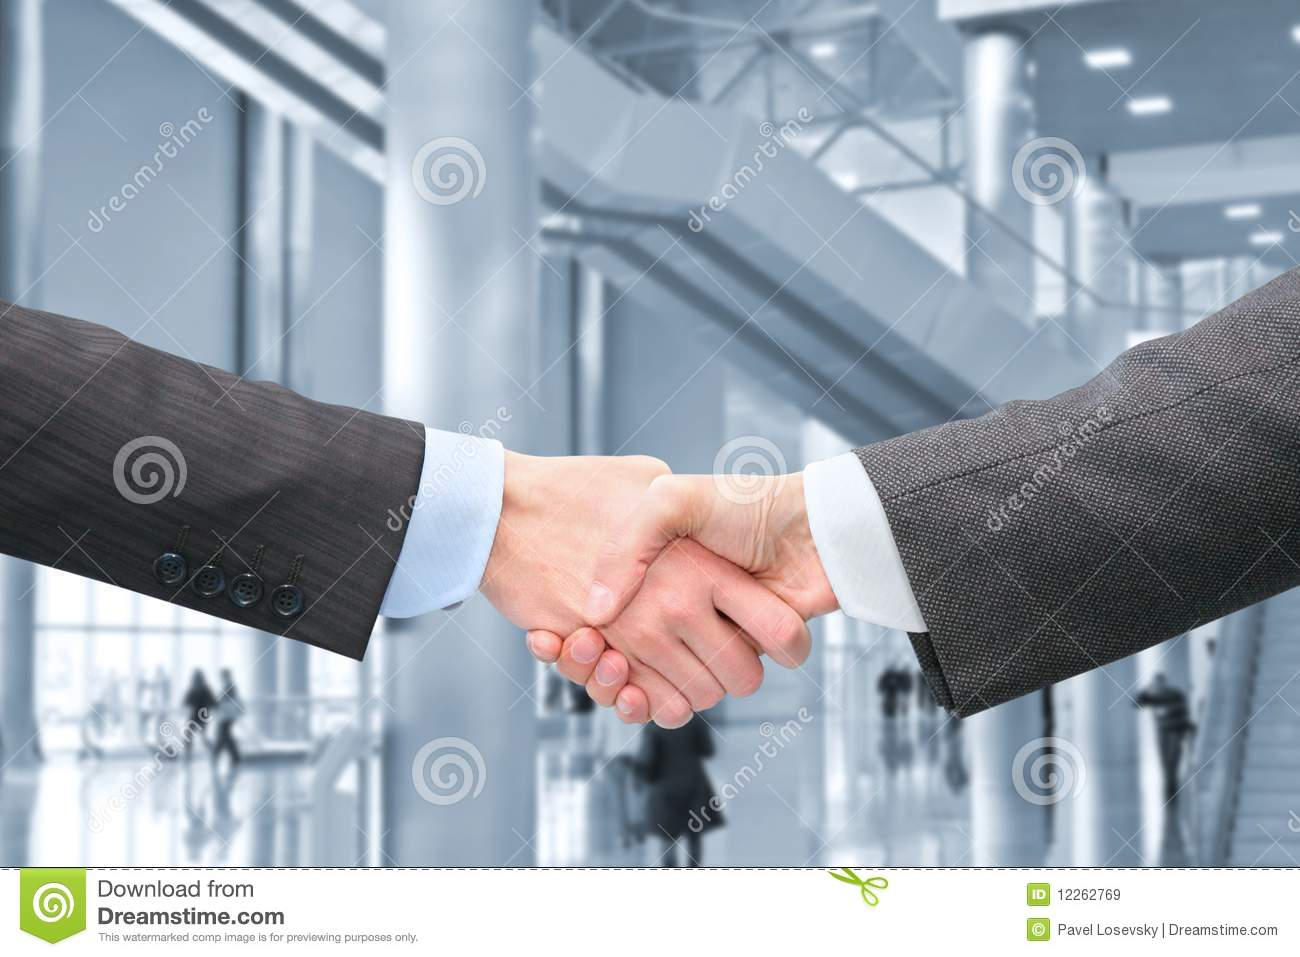 Shaking hands in hall of business center